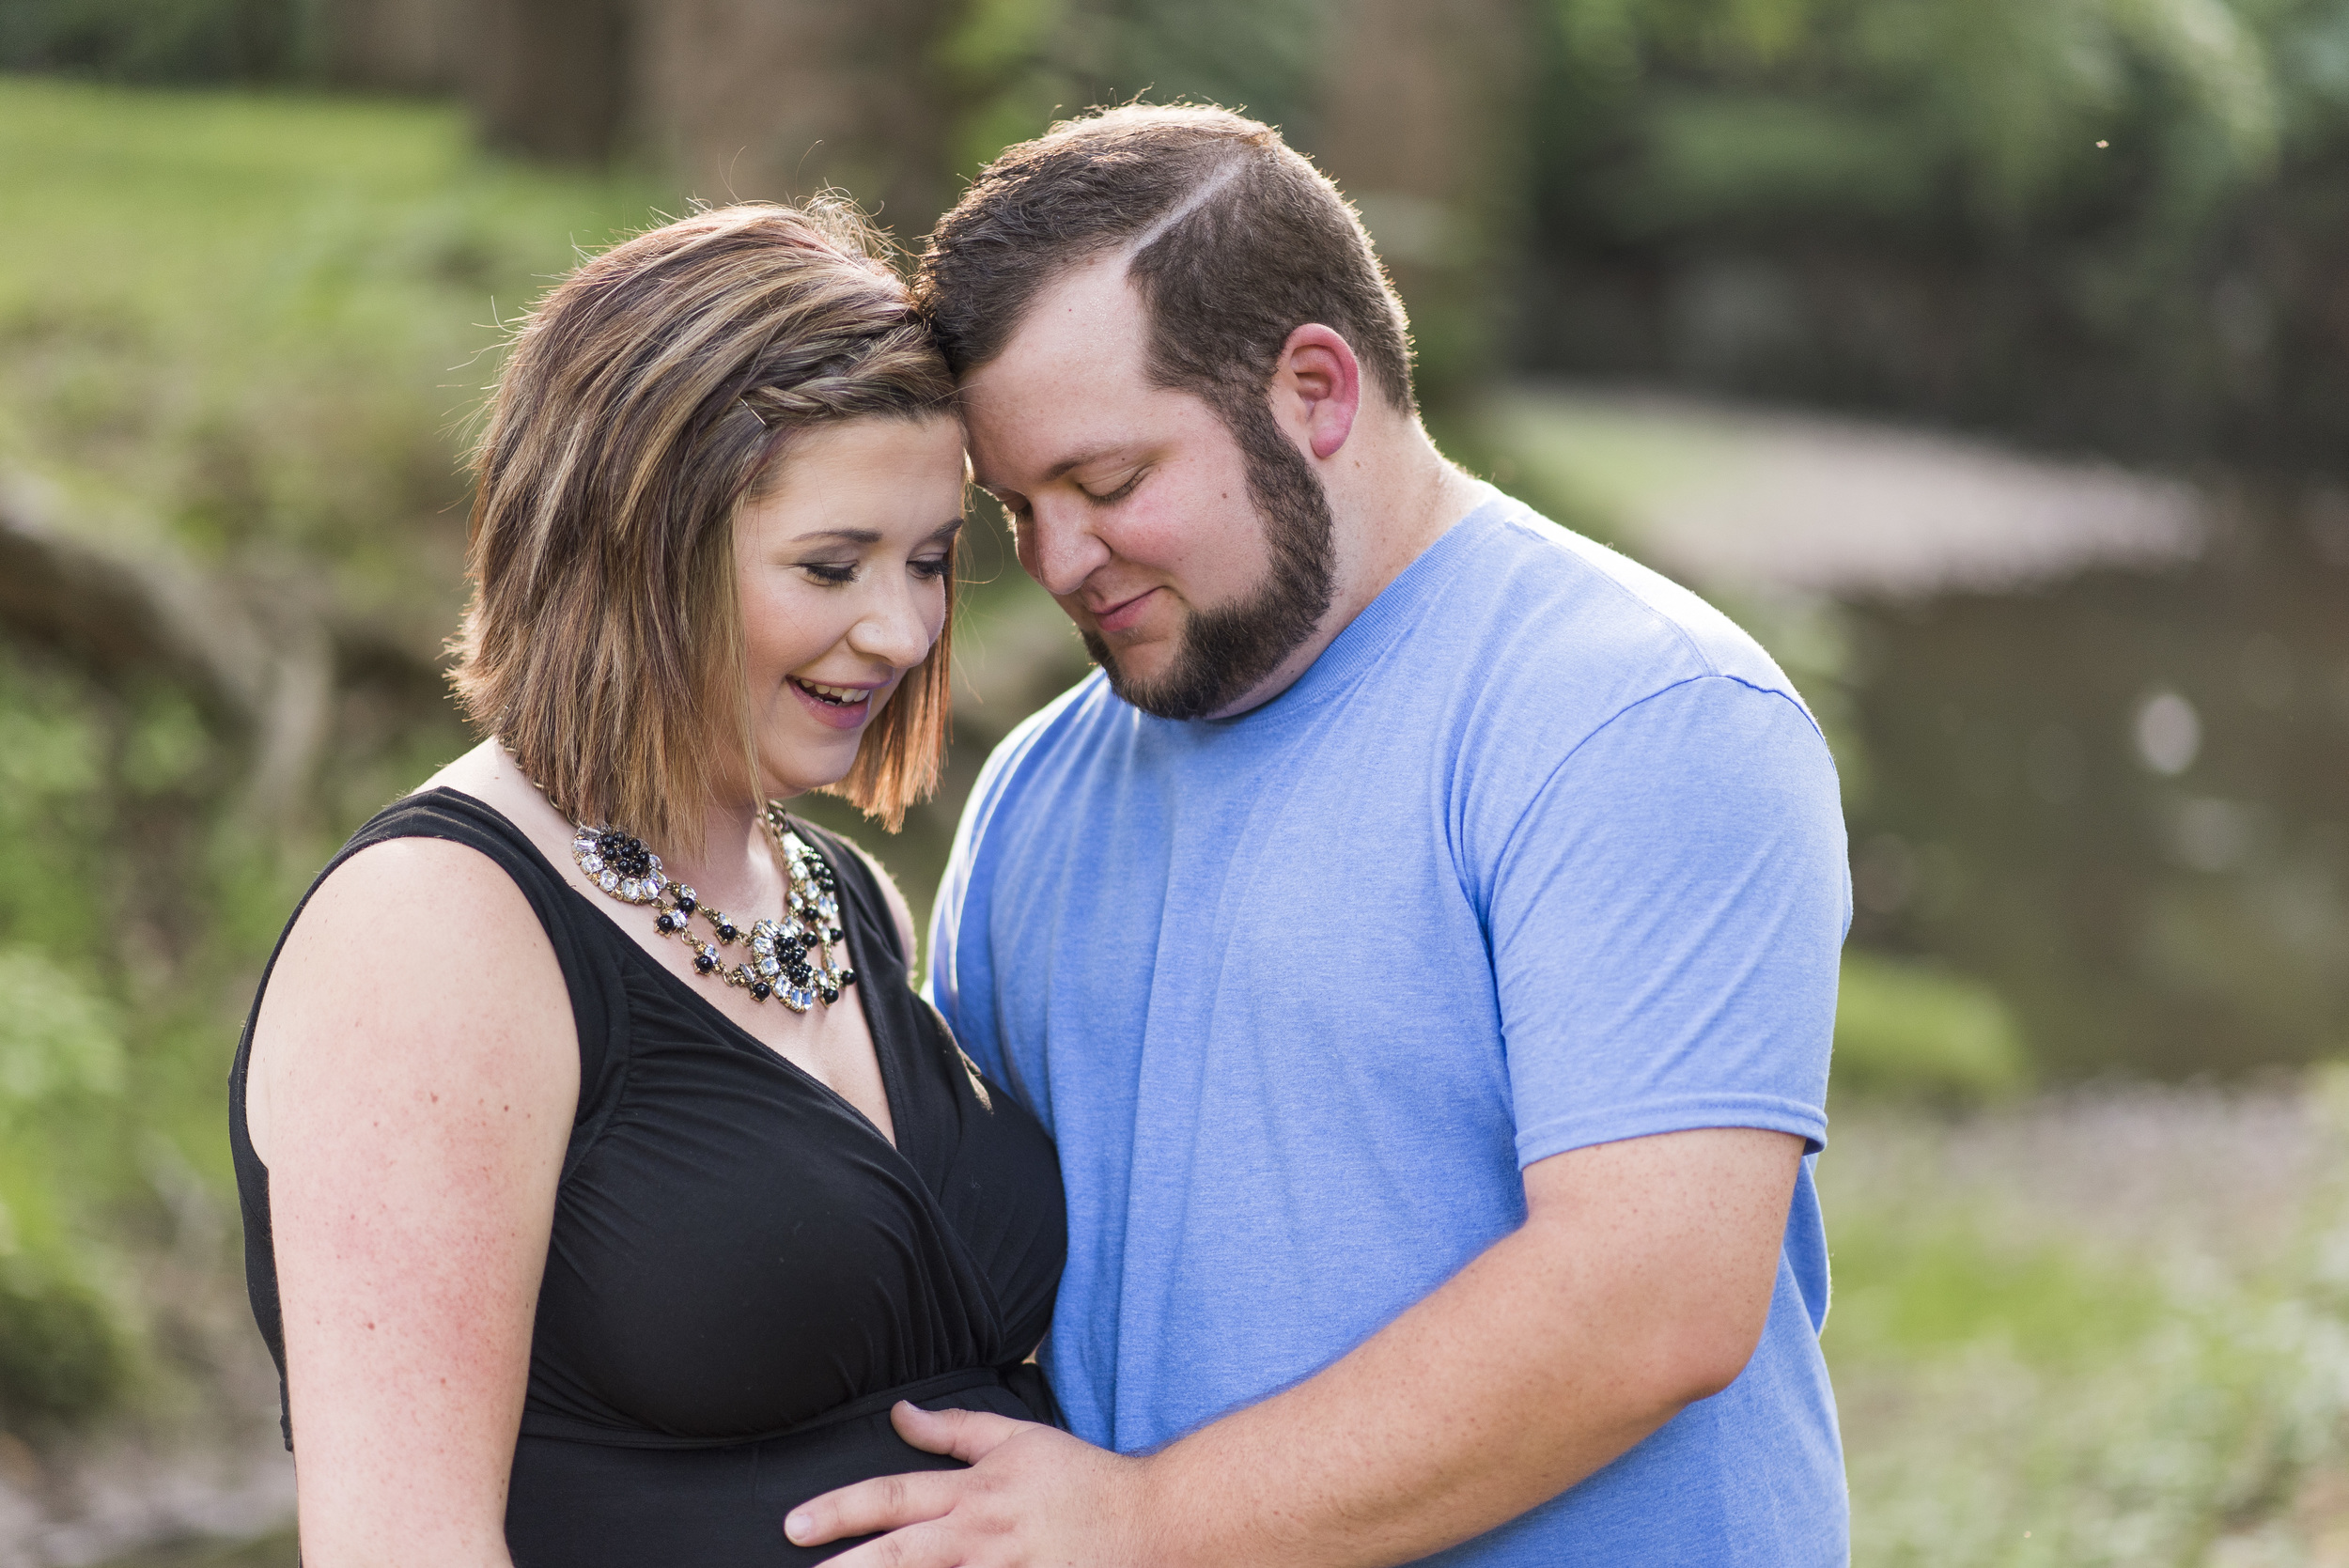 Maternity_Session_Water_Lynchburg_VA20150625_0018.jpg